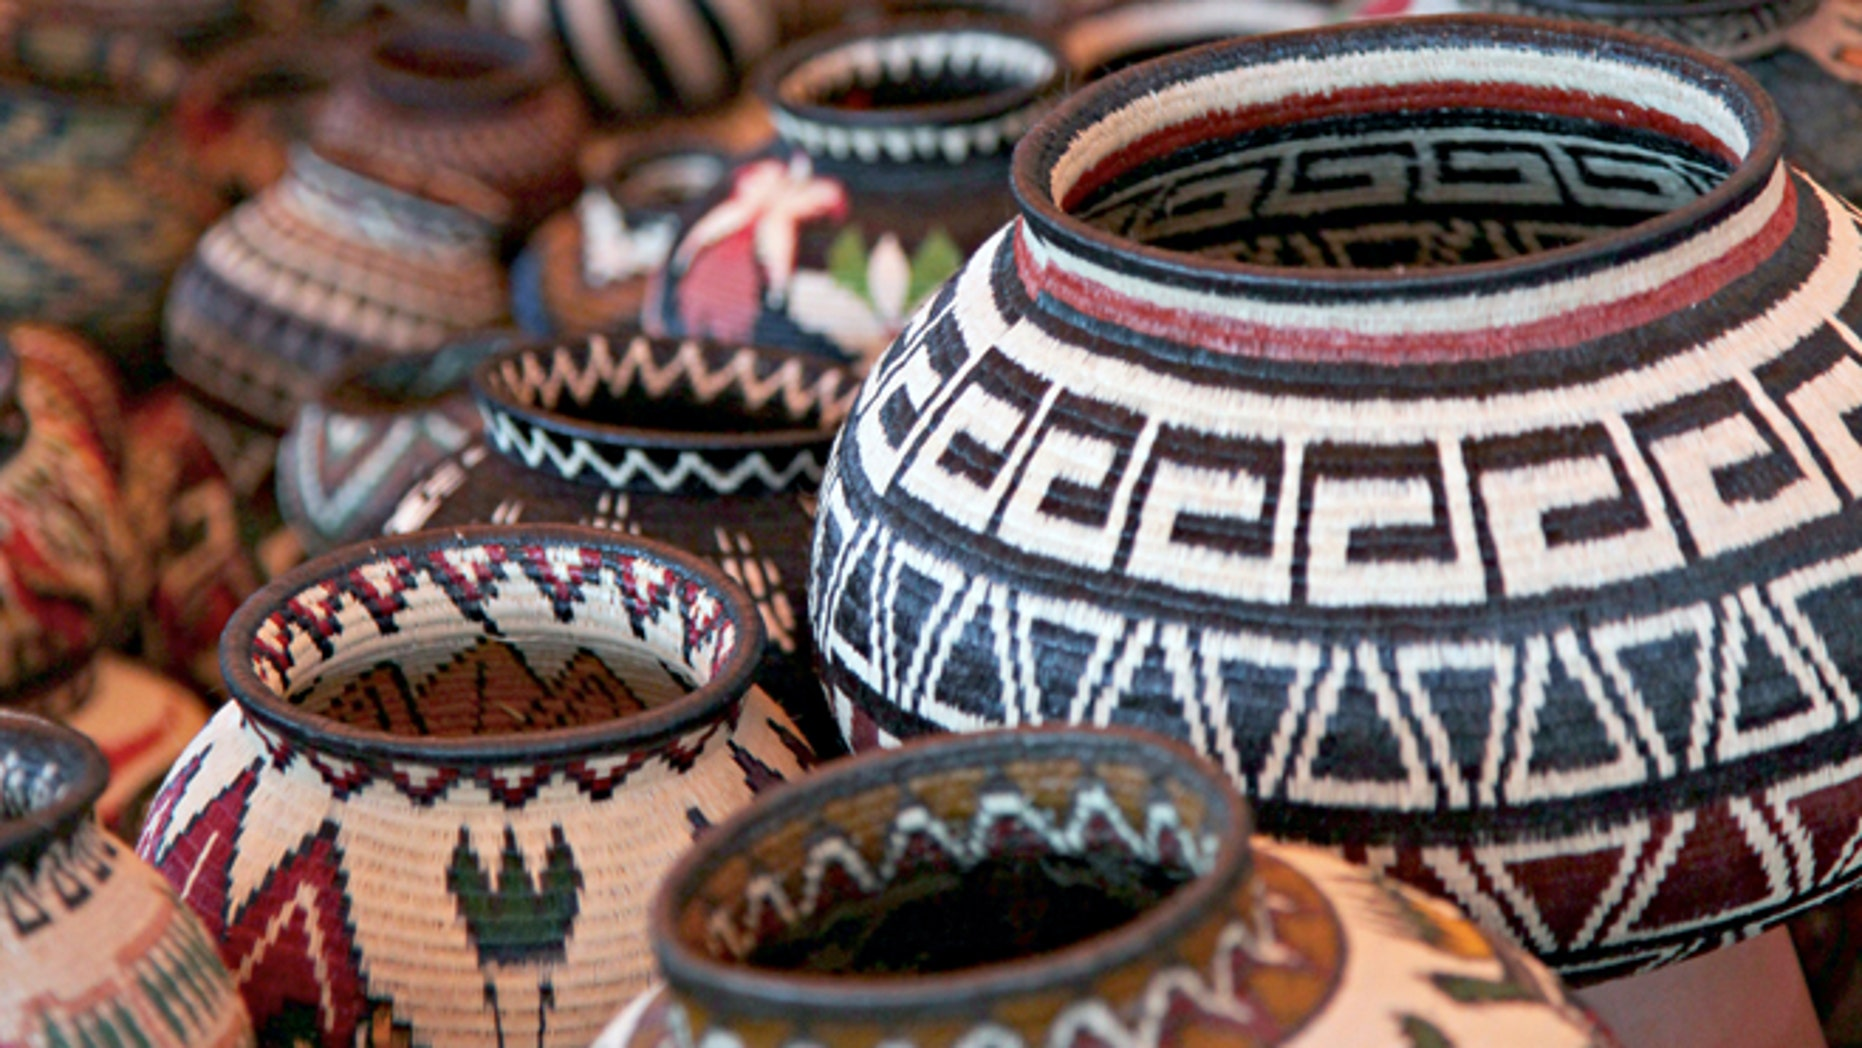 This undated image, provided by the International Folk Art Market, shows handwoven baskets from the Wounaan National Congress in Panama at the International Folk Art Market in Santa Fe, N.M. This year's annual market begins July 10, 2015. (Stephanie Mendez/ International Folk Art Market via AP)